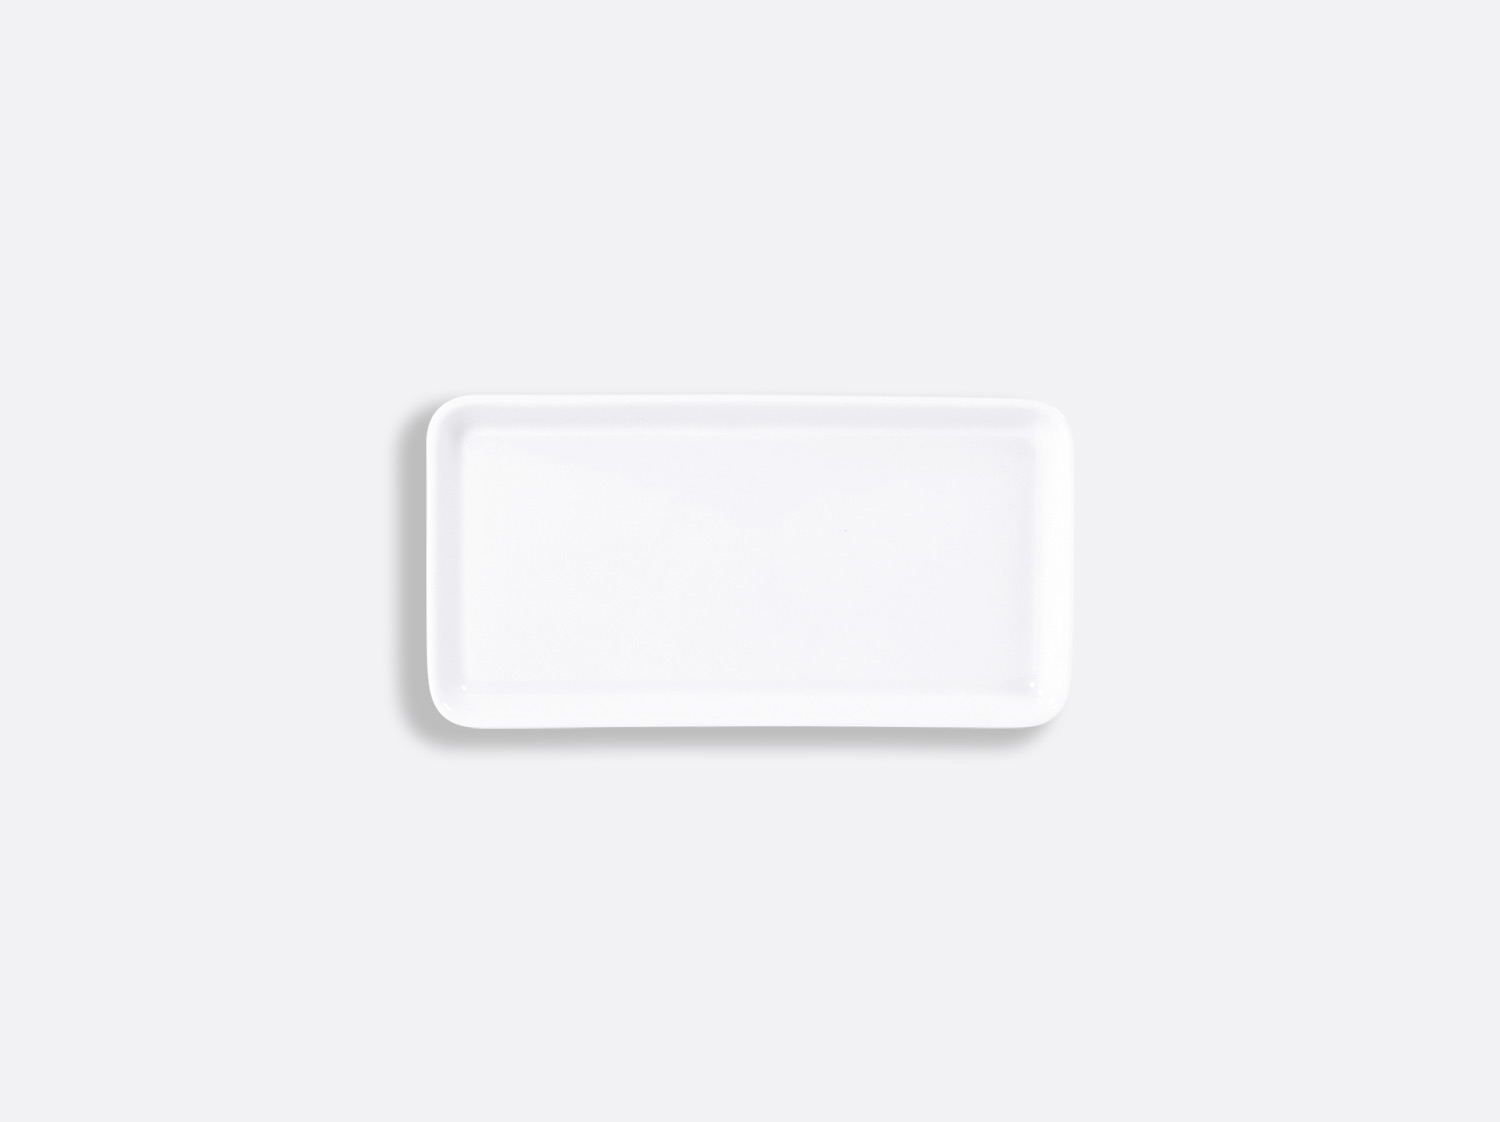 Plateau rectangulaire 13,5 x 7 cm en porcelaine de la collection FANTAISIES BLANCHES Bernardaud